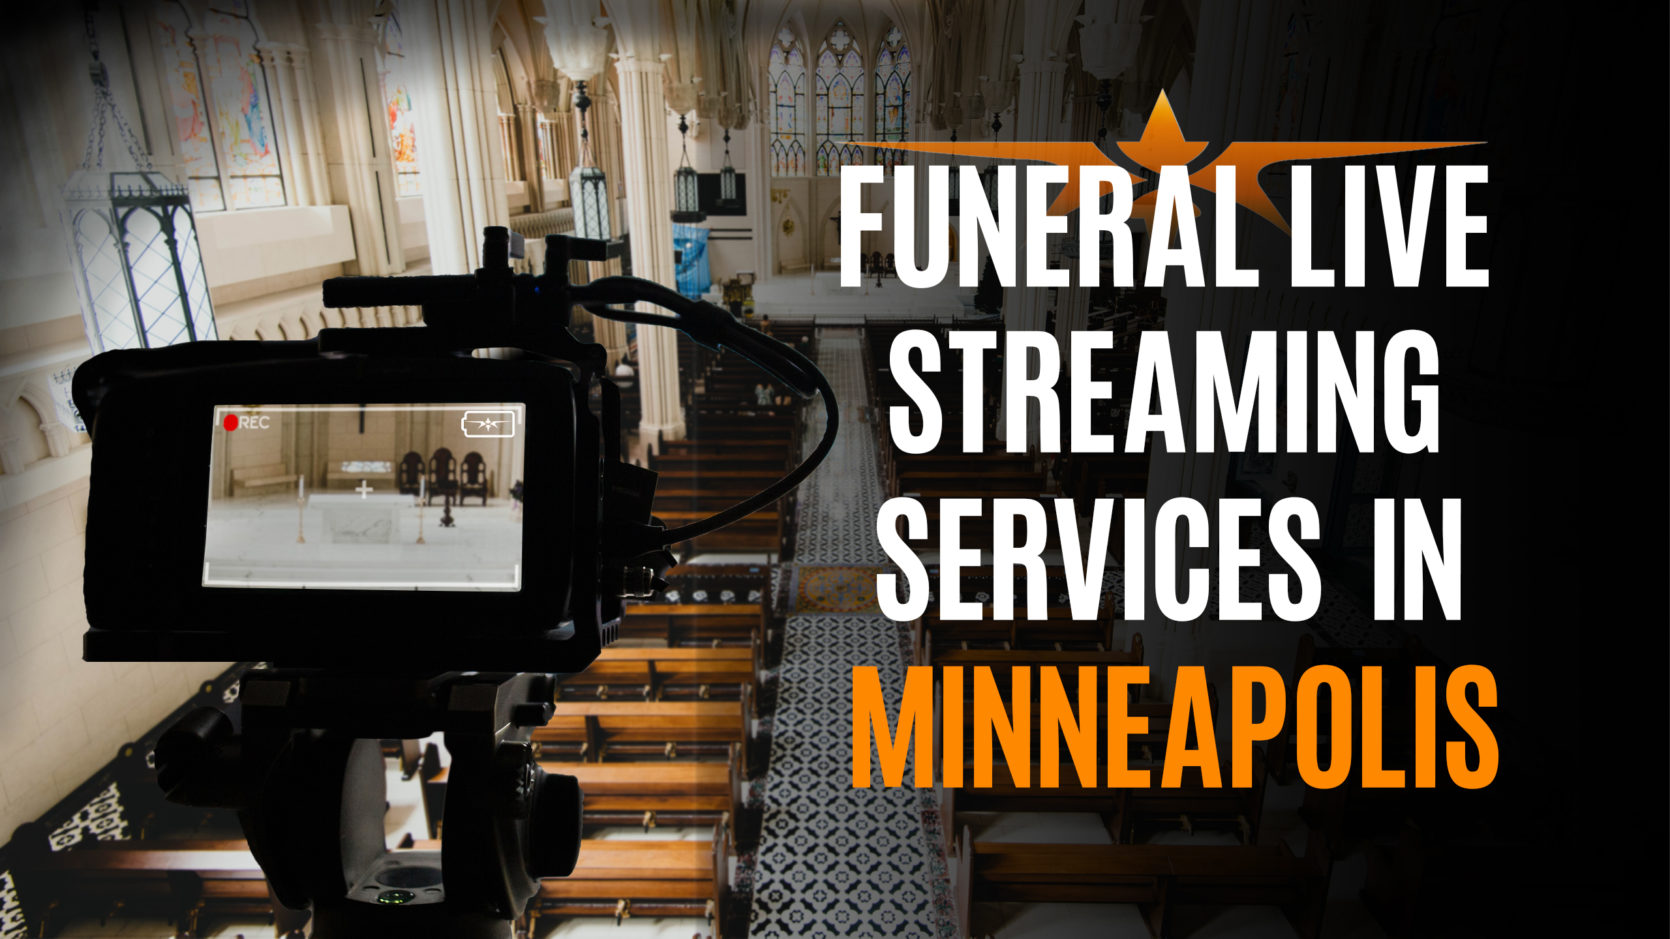 Funeral Live Streaming Services in Minneapolis